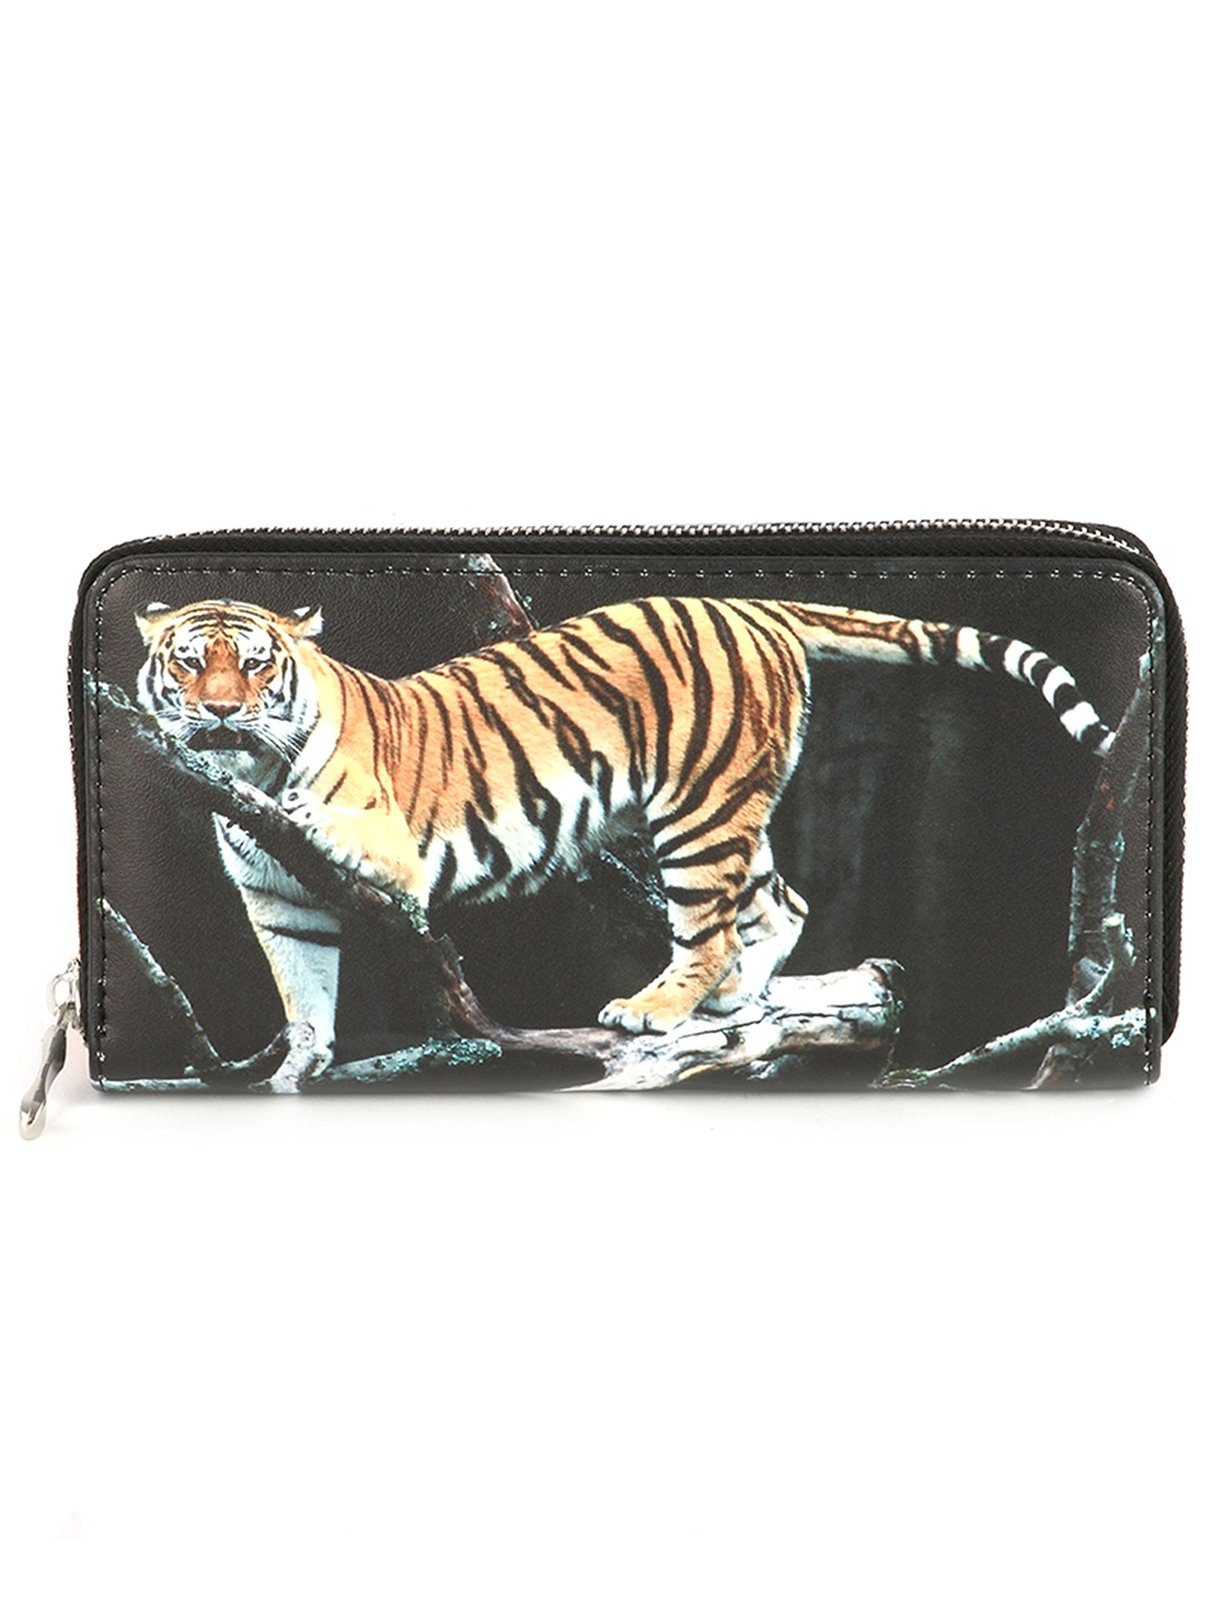 Tiger Print Zip Around Wallet Clutch Purse